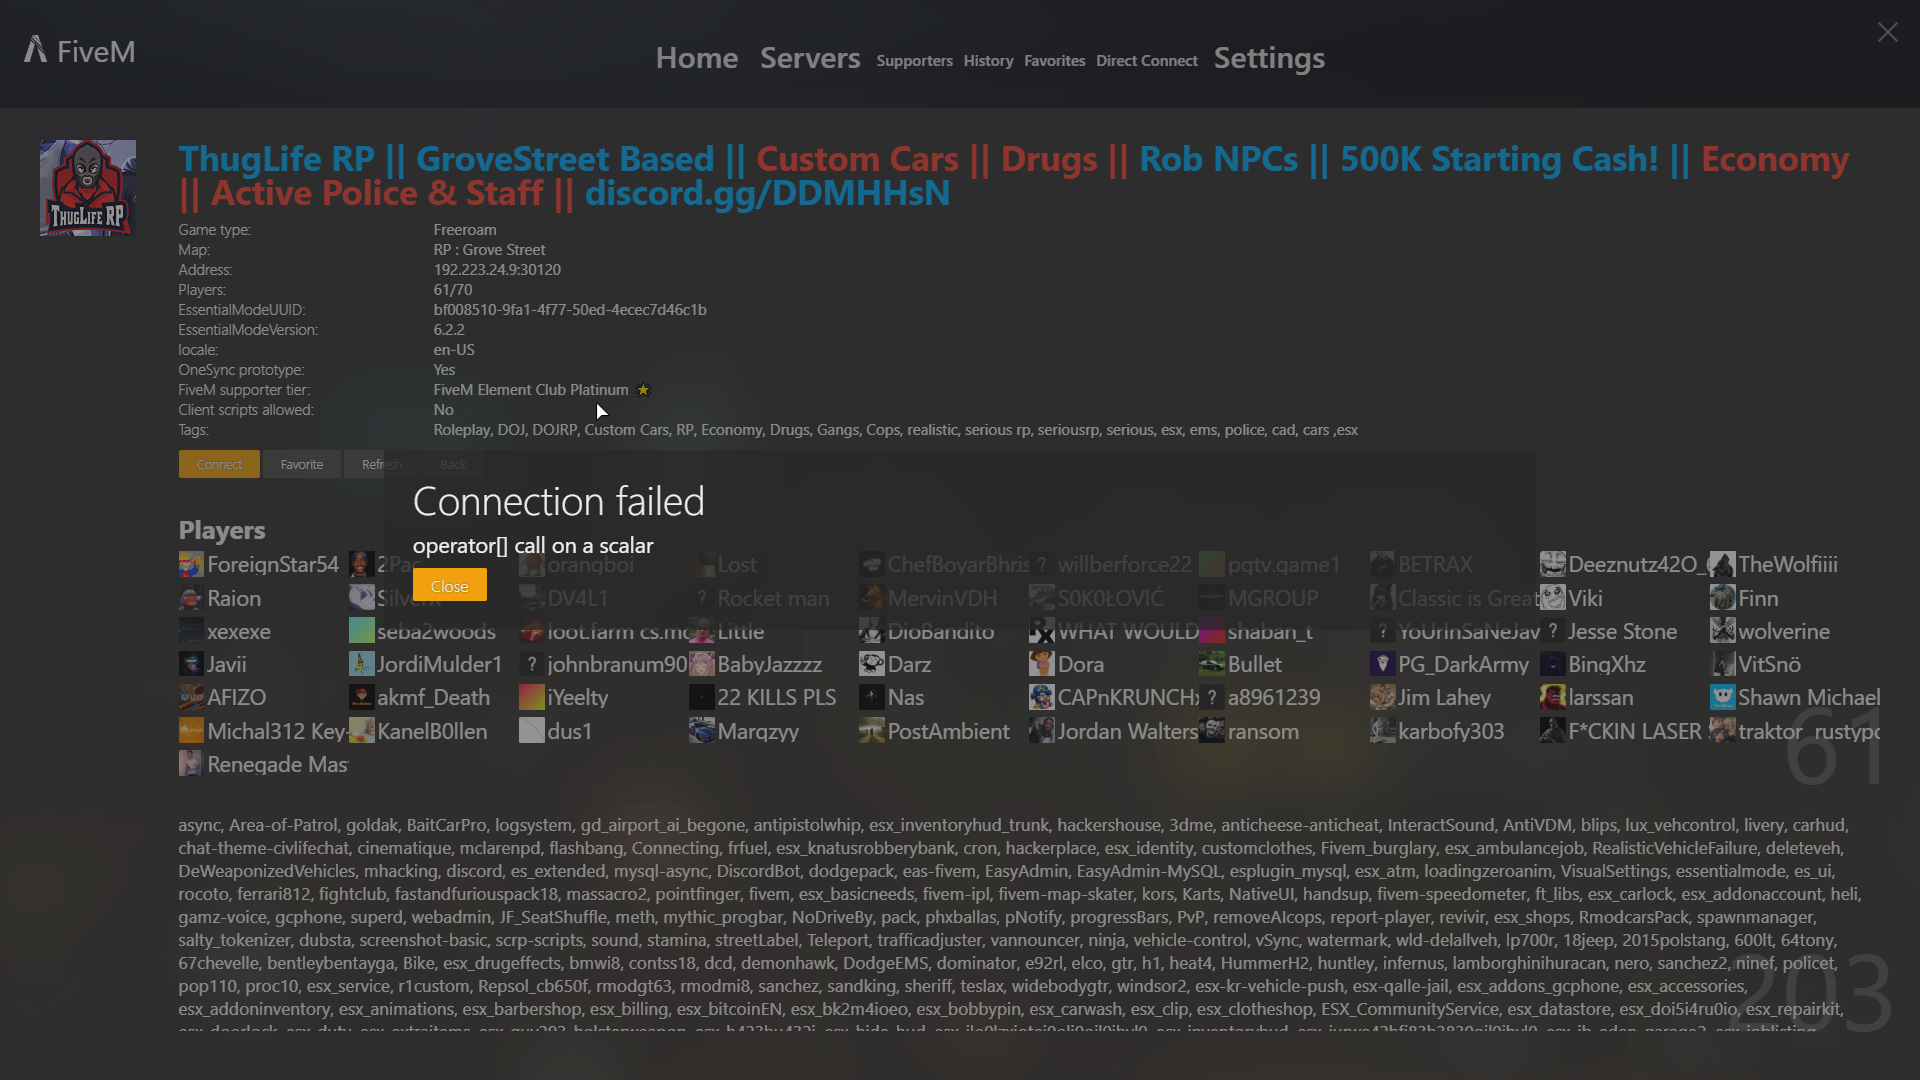 Can't connect to any servers with FiveM - Technical Support